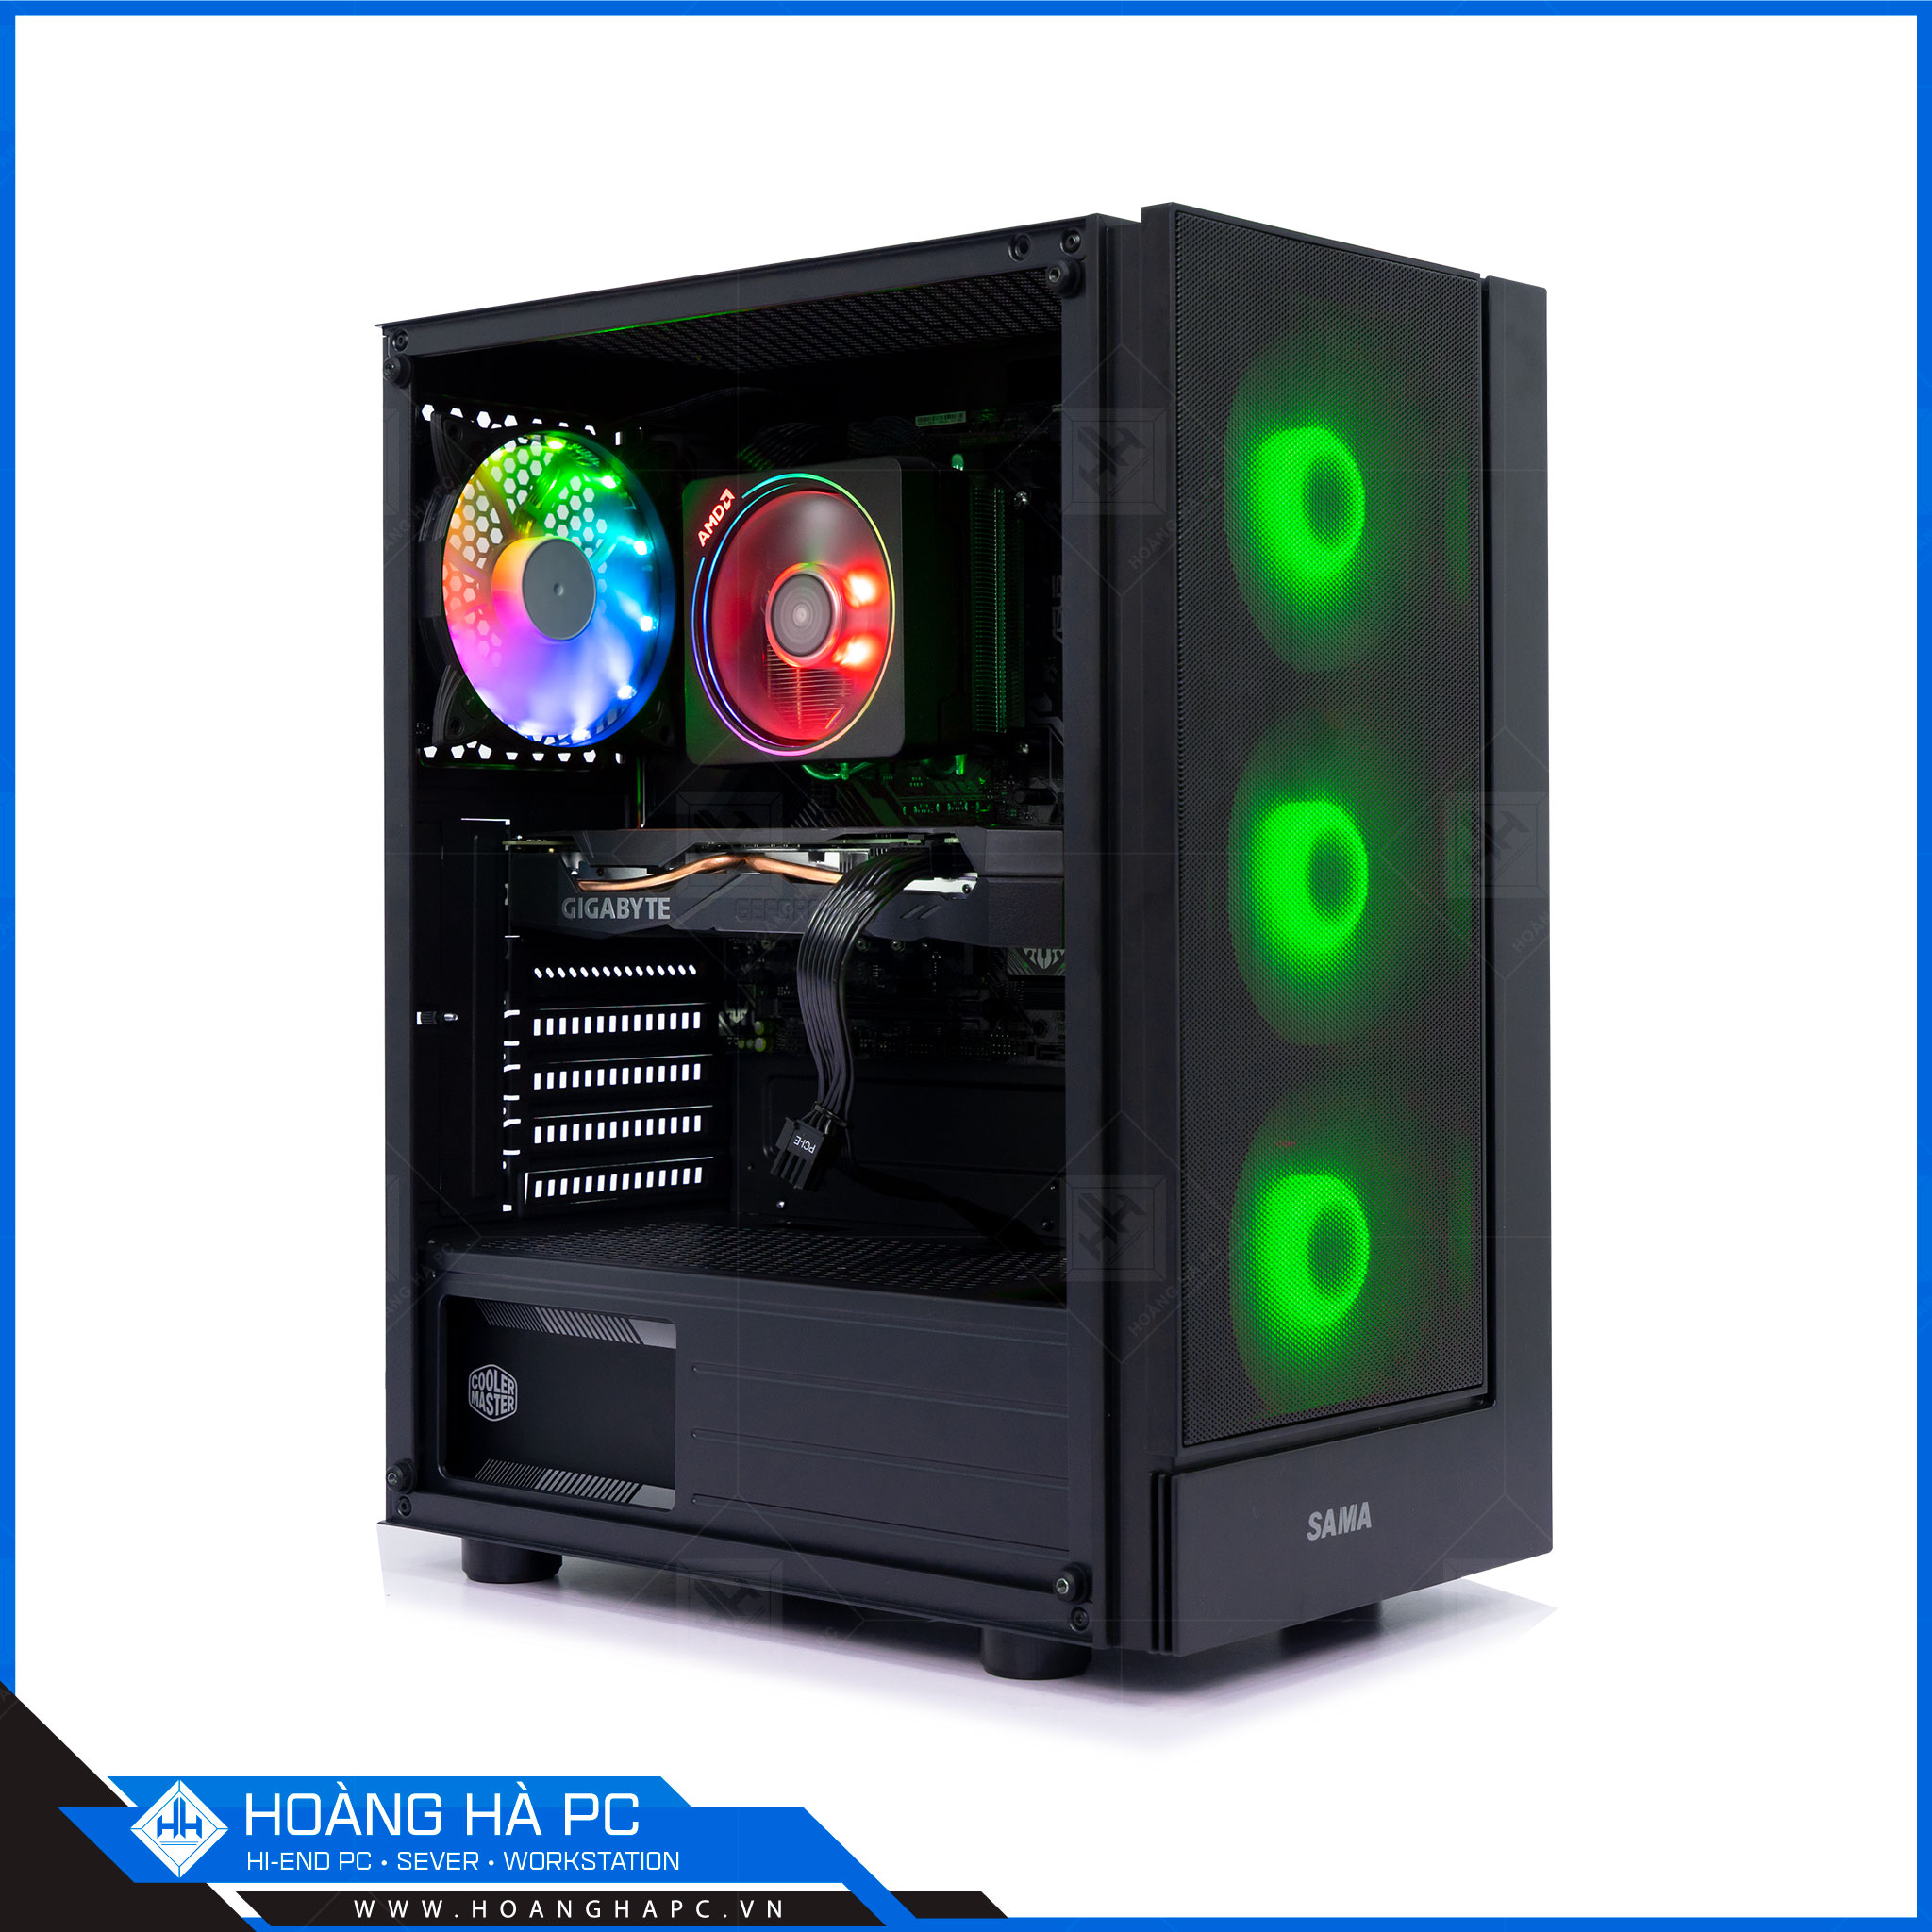 Case SAMA 3301 ( 3 FAN RGB )